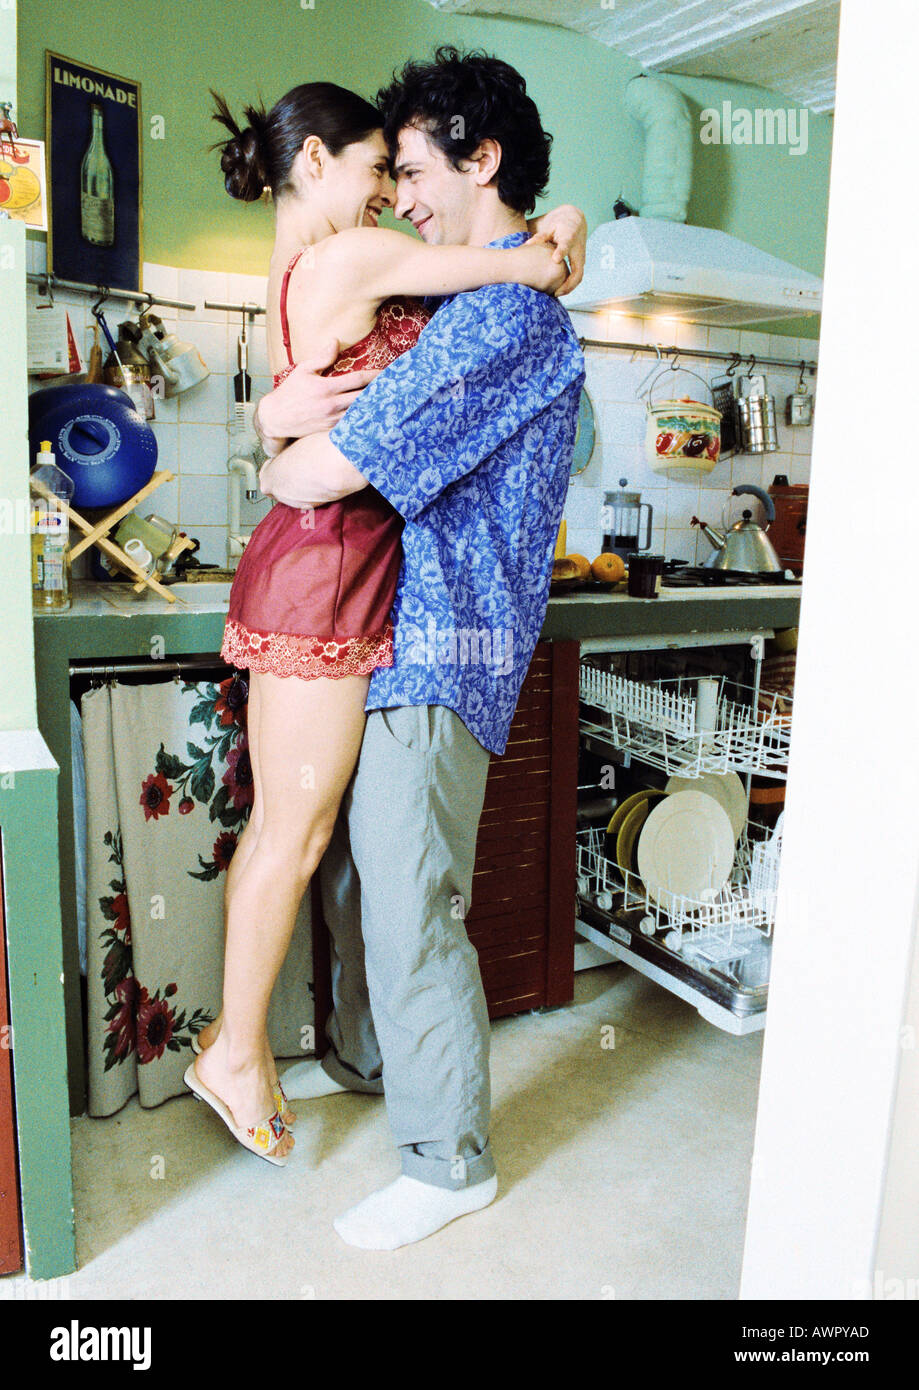 Man and woman embracing in kitchen, woman's feet off the ground. Stock Photo